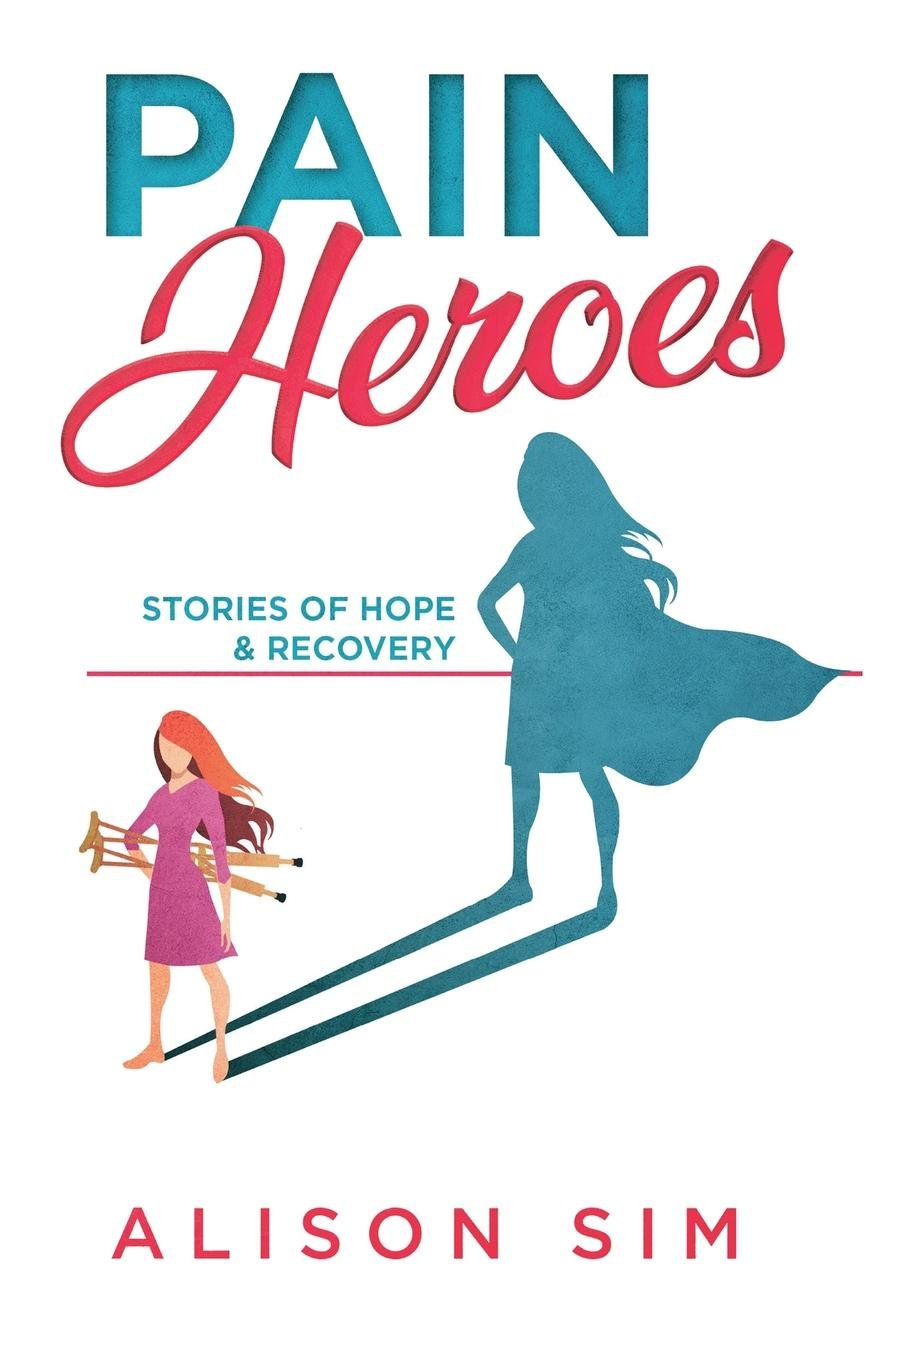 Pain Heroes Stories of Hope and Recovery